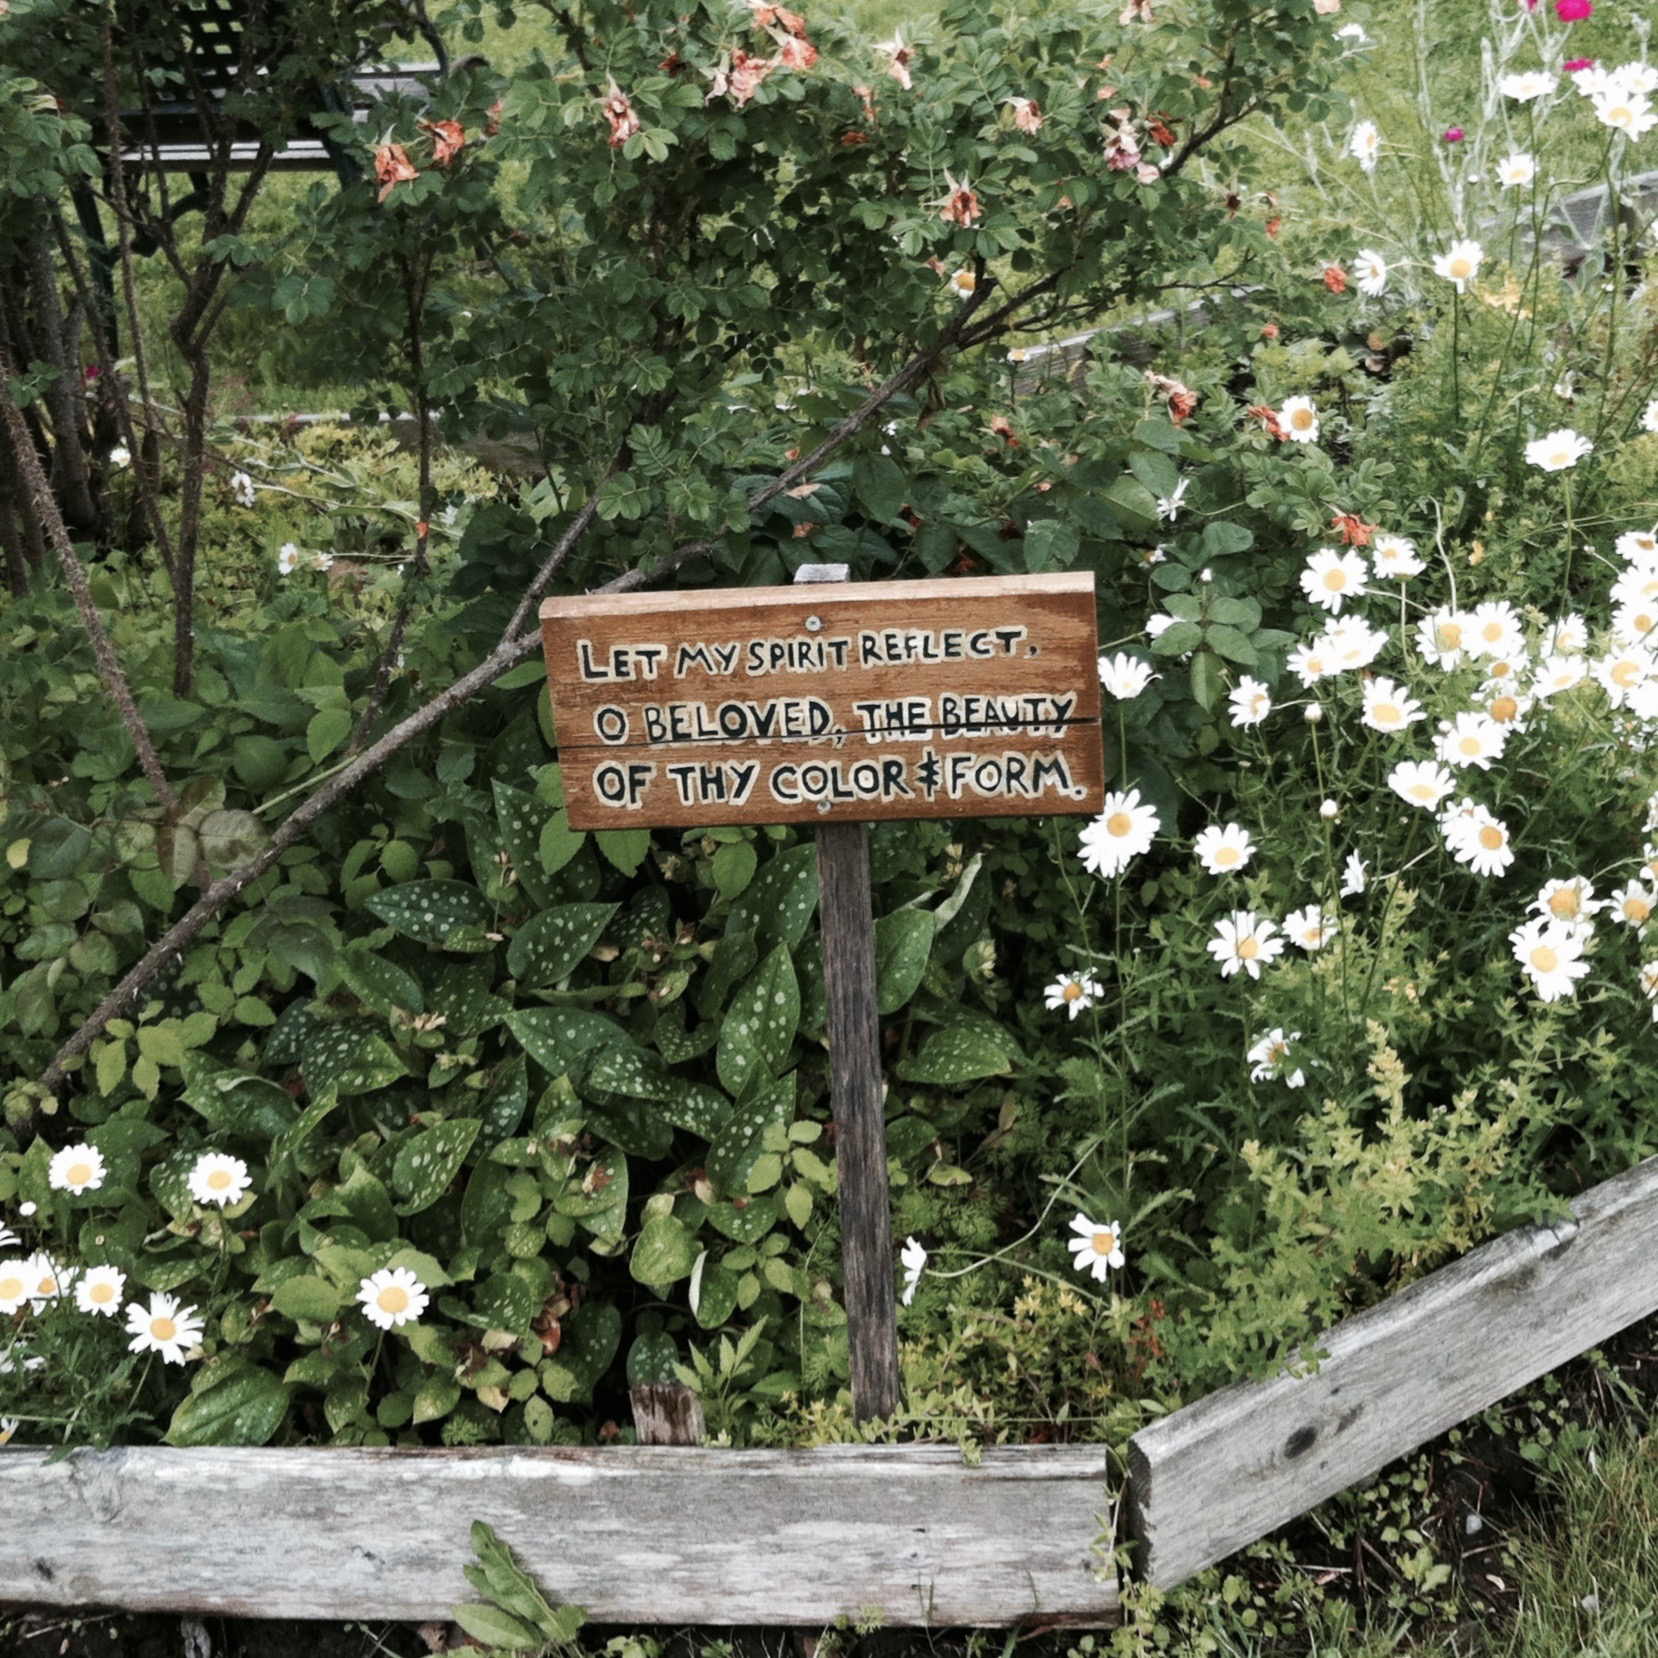 A quote from Hazrat Inayat Khan's Nature Meditations in the garden of the Abode. — N.M-Y. '15